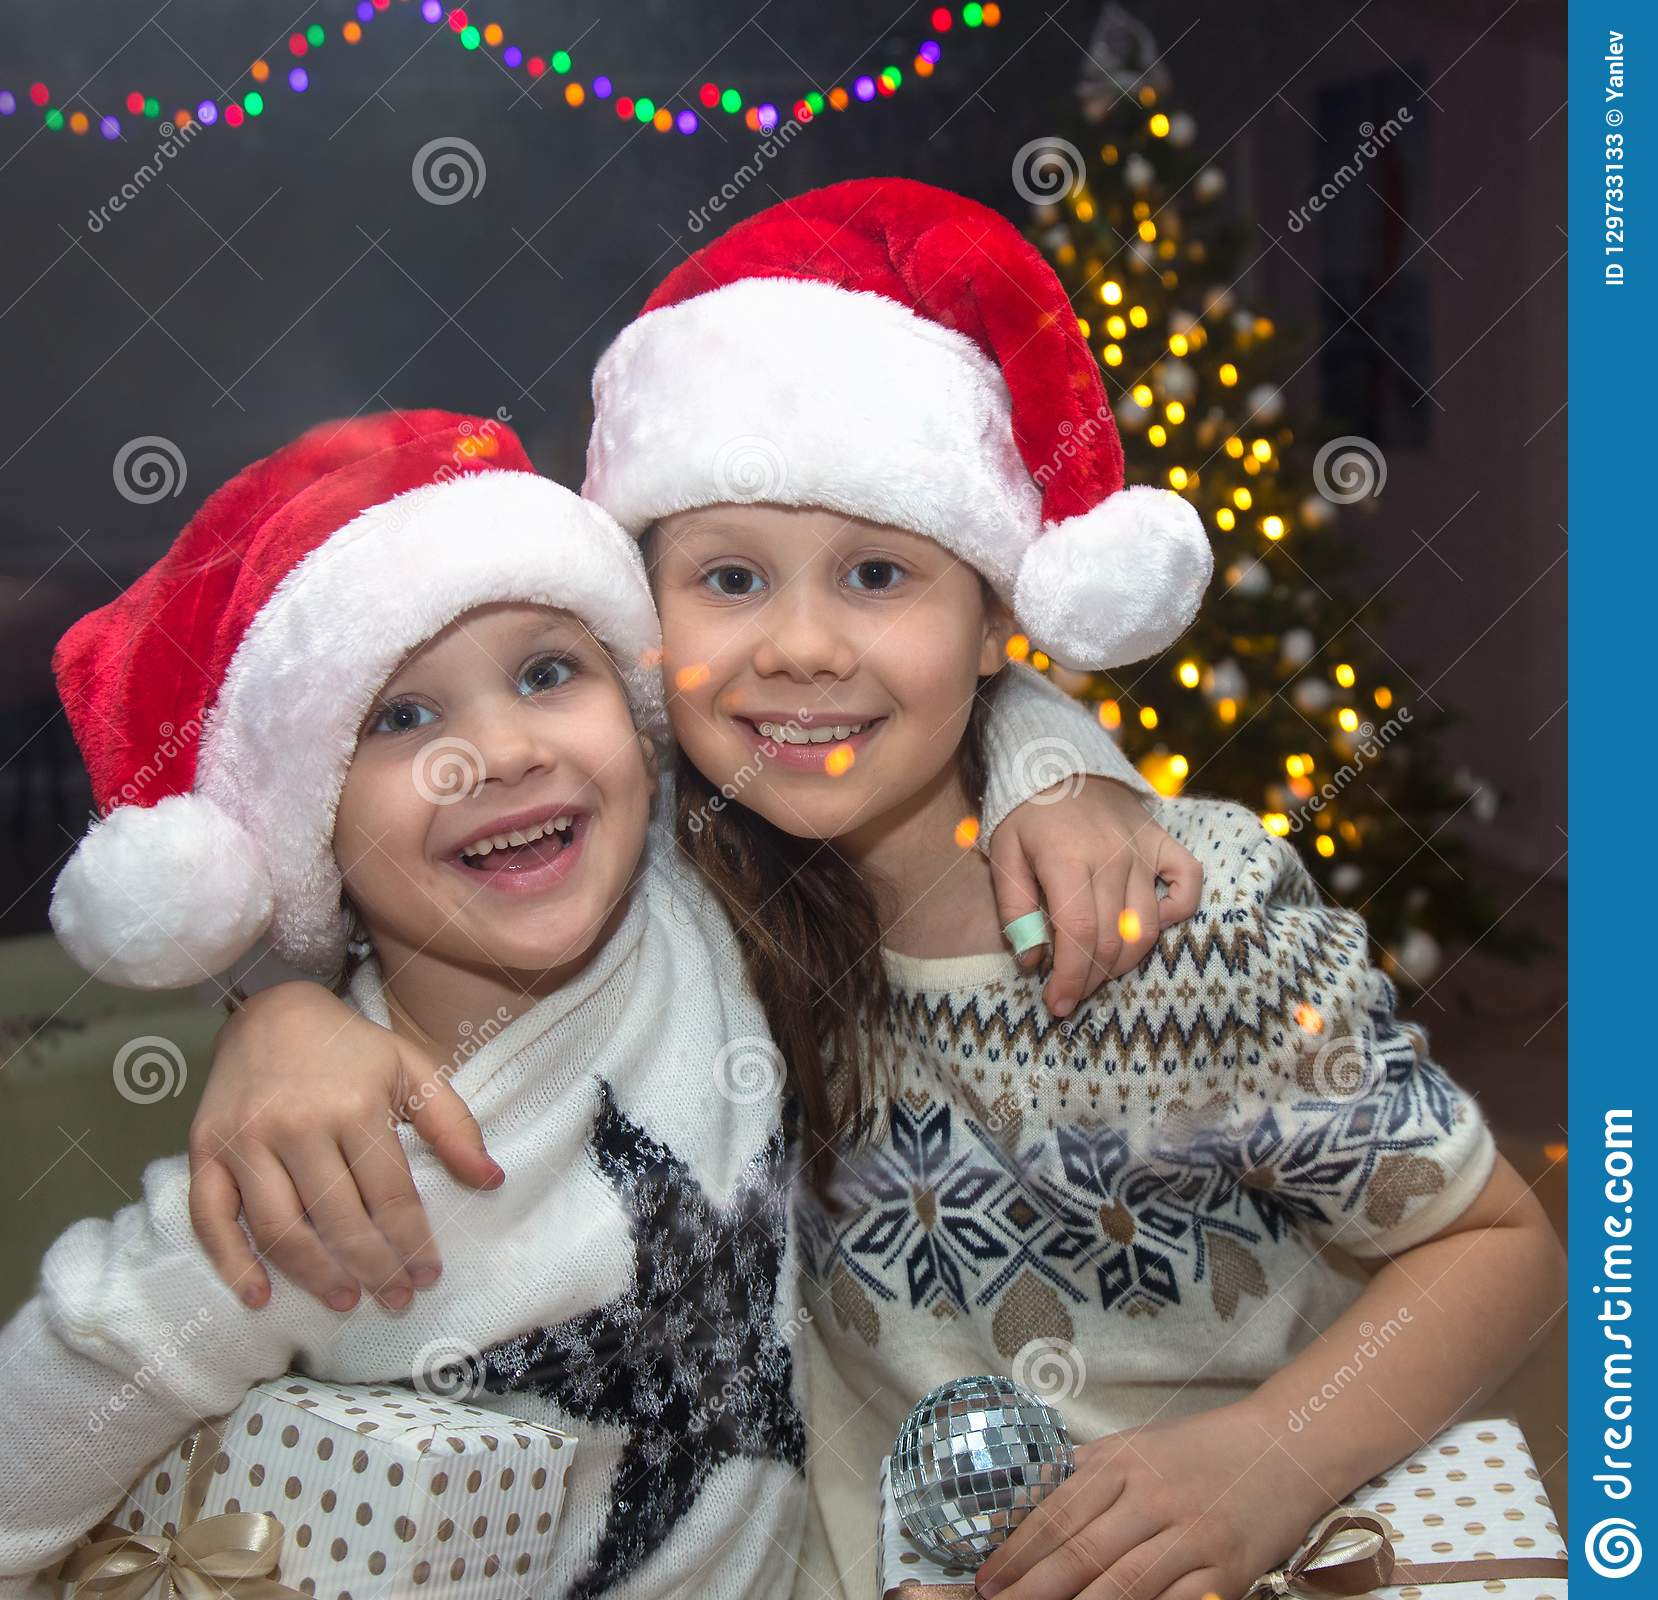 c9a847b89b253 Portrait of Two little girls in the Santa hat with Christmas present under  the Christmas tree